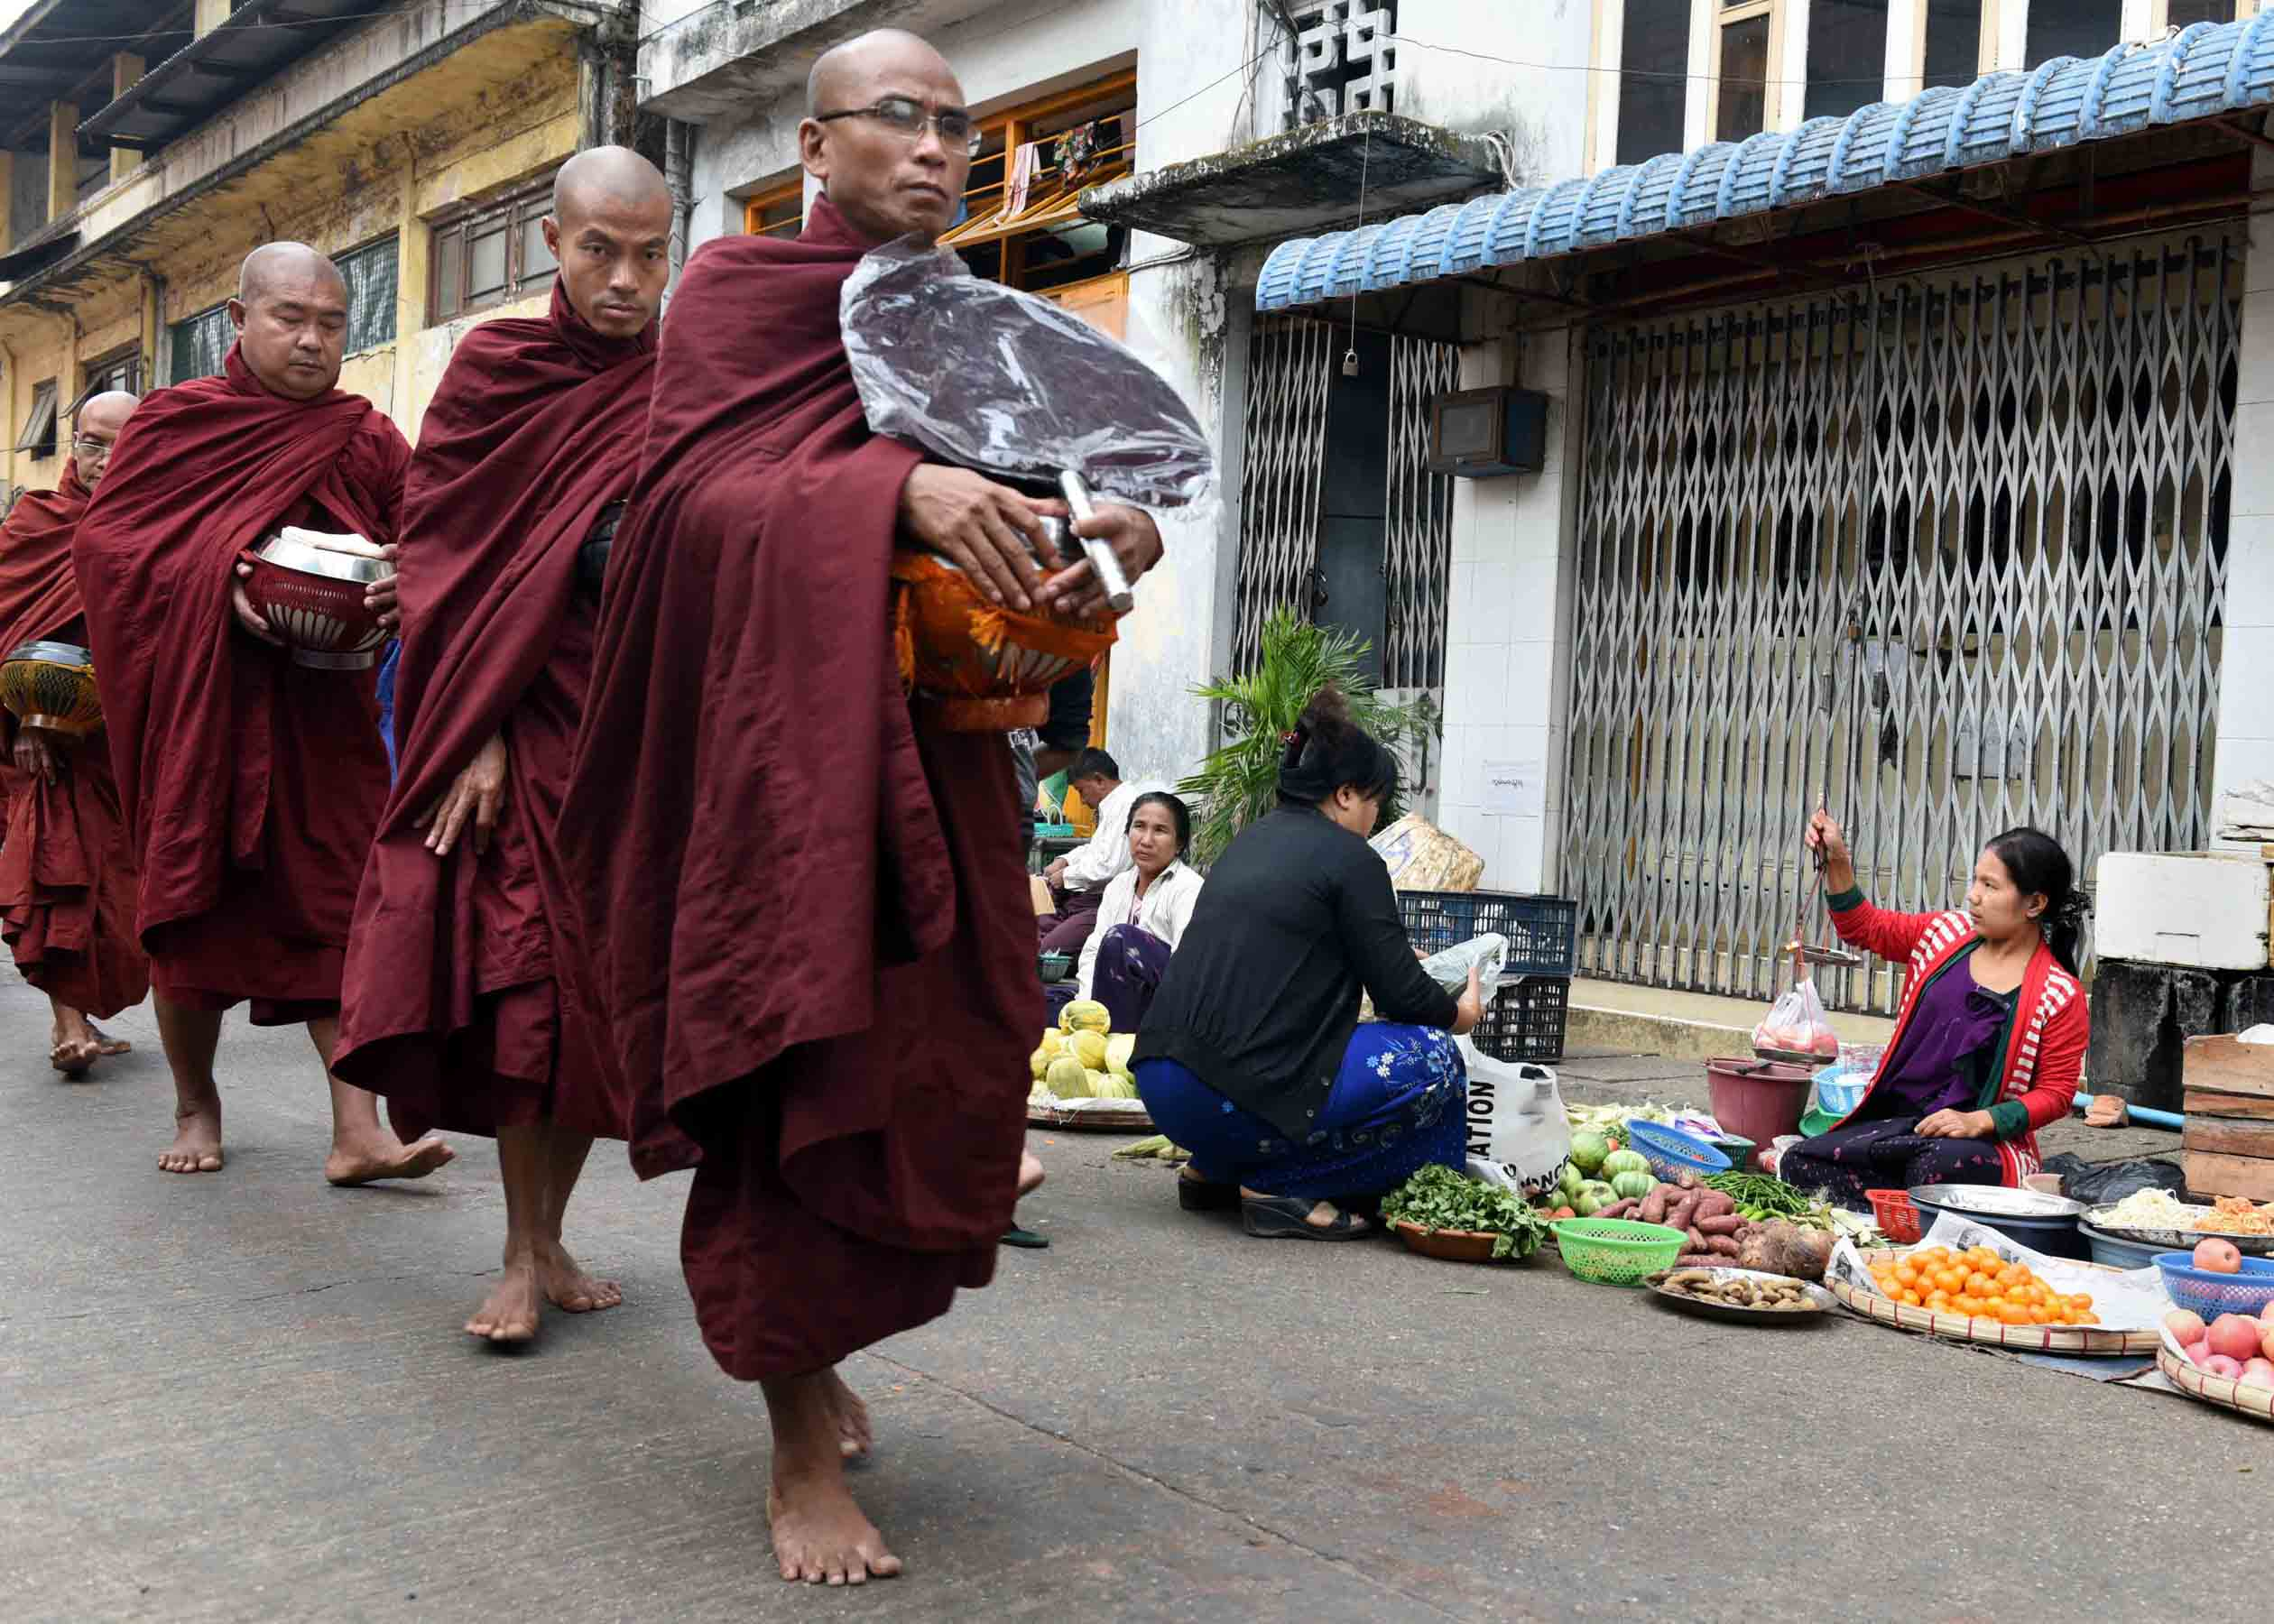 Buddhist monks in crimson robes walk through the streets of Yangon barefoot each morning collecting food, money, and other material offerings from people and bestowing brief prayers in exchange. (Photo: Naomi Hellmann)